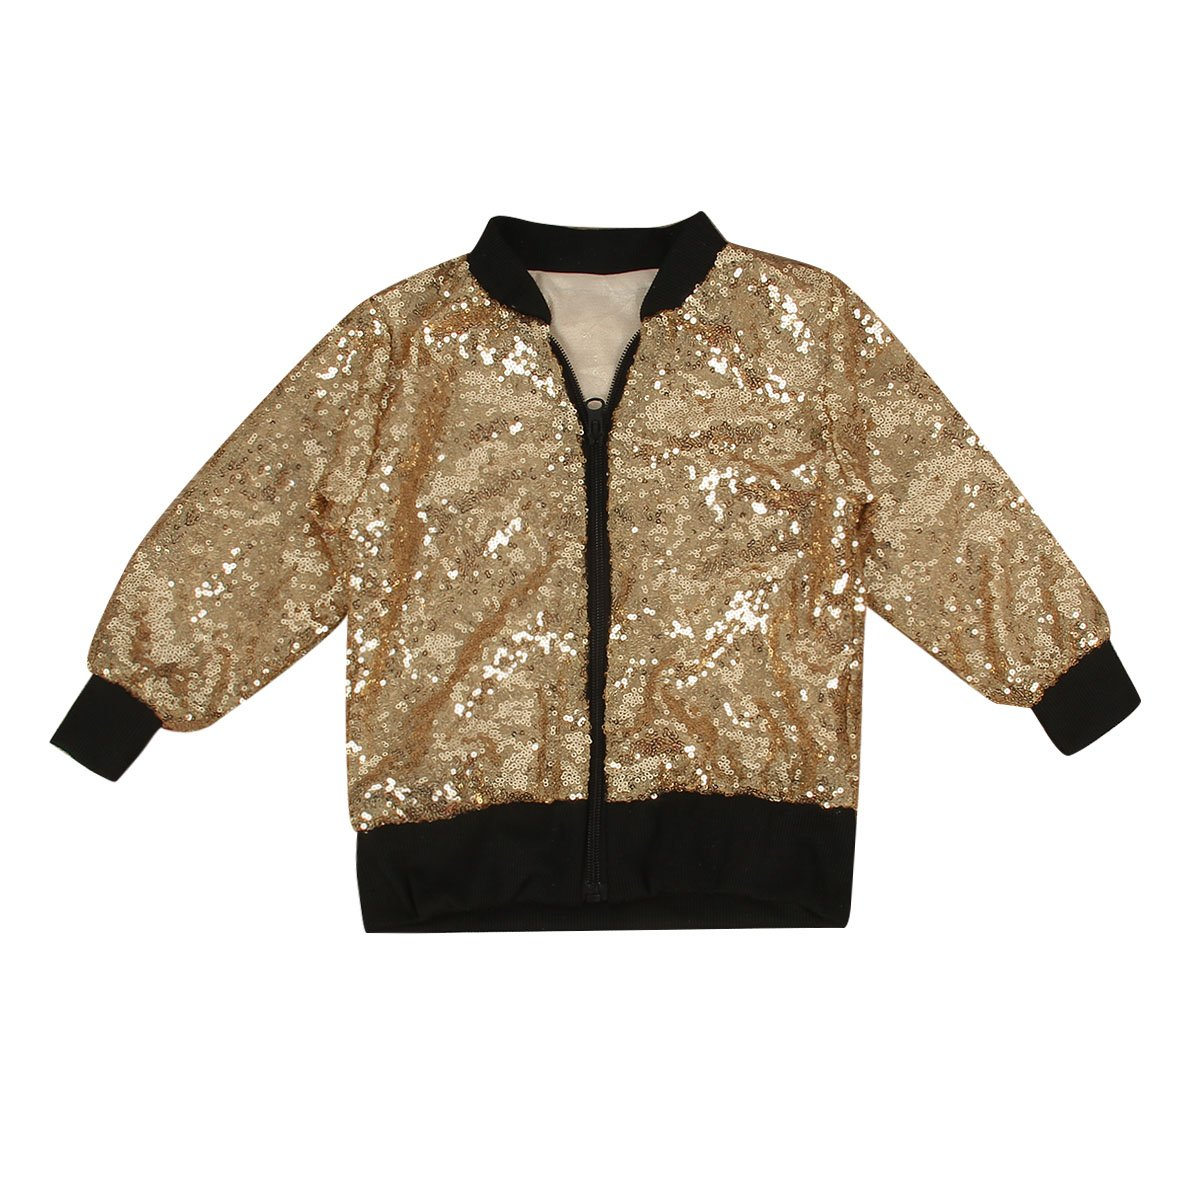 1-6 Kids Toddler Girl Long Sleeve Sequin Zipper Coat Outwear Fashion Jacket (4-5T) by Ant-Kinds